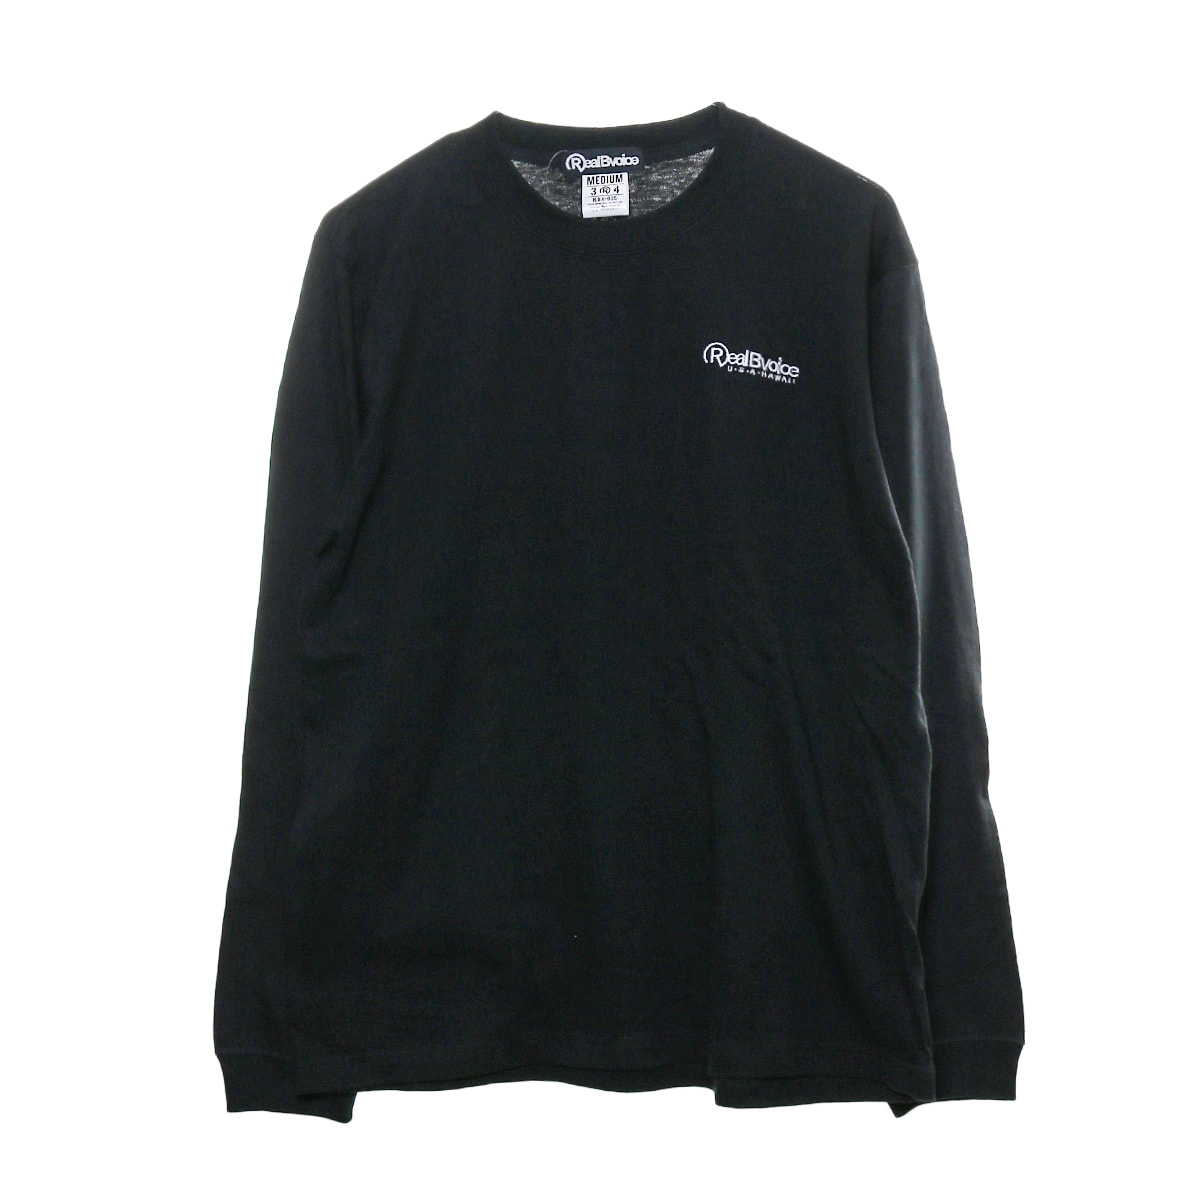 EST.1999 BACK PRINT LONG T-SHIRT